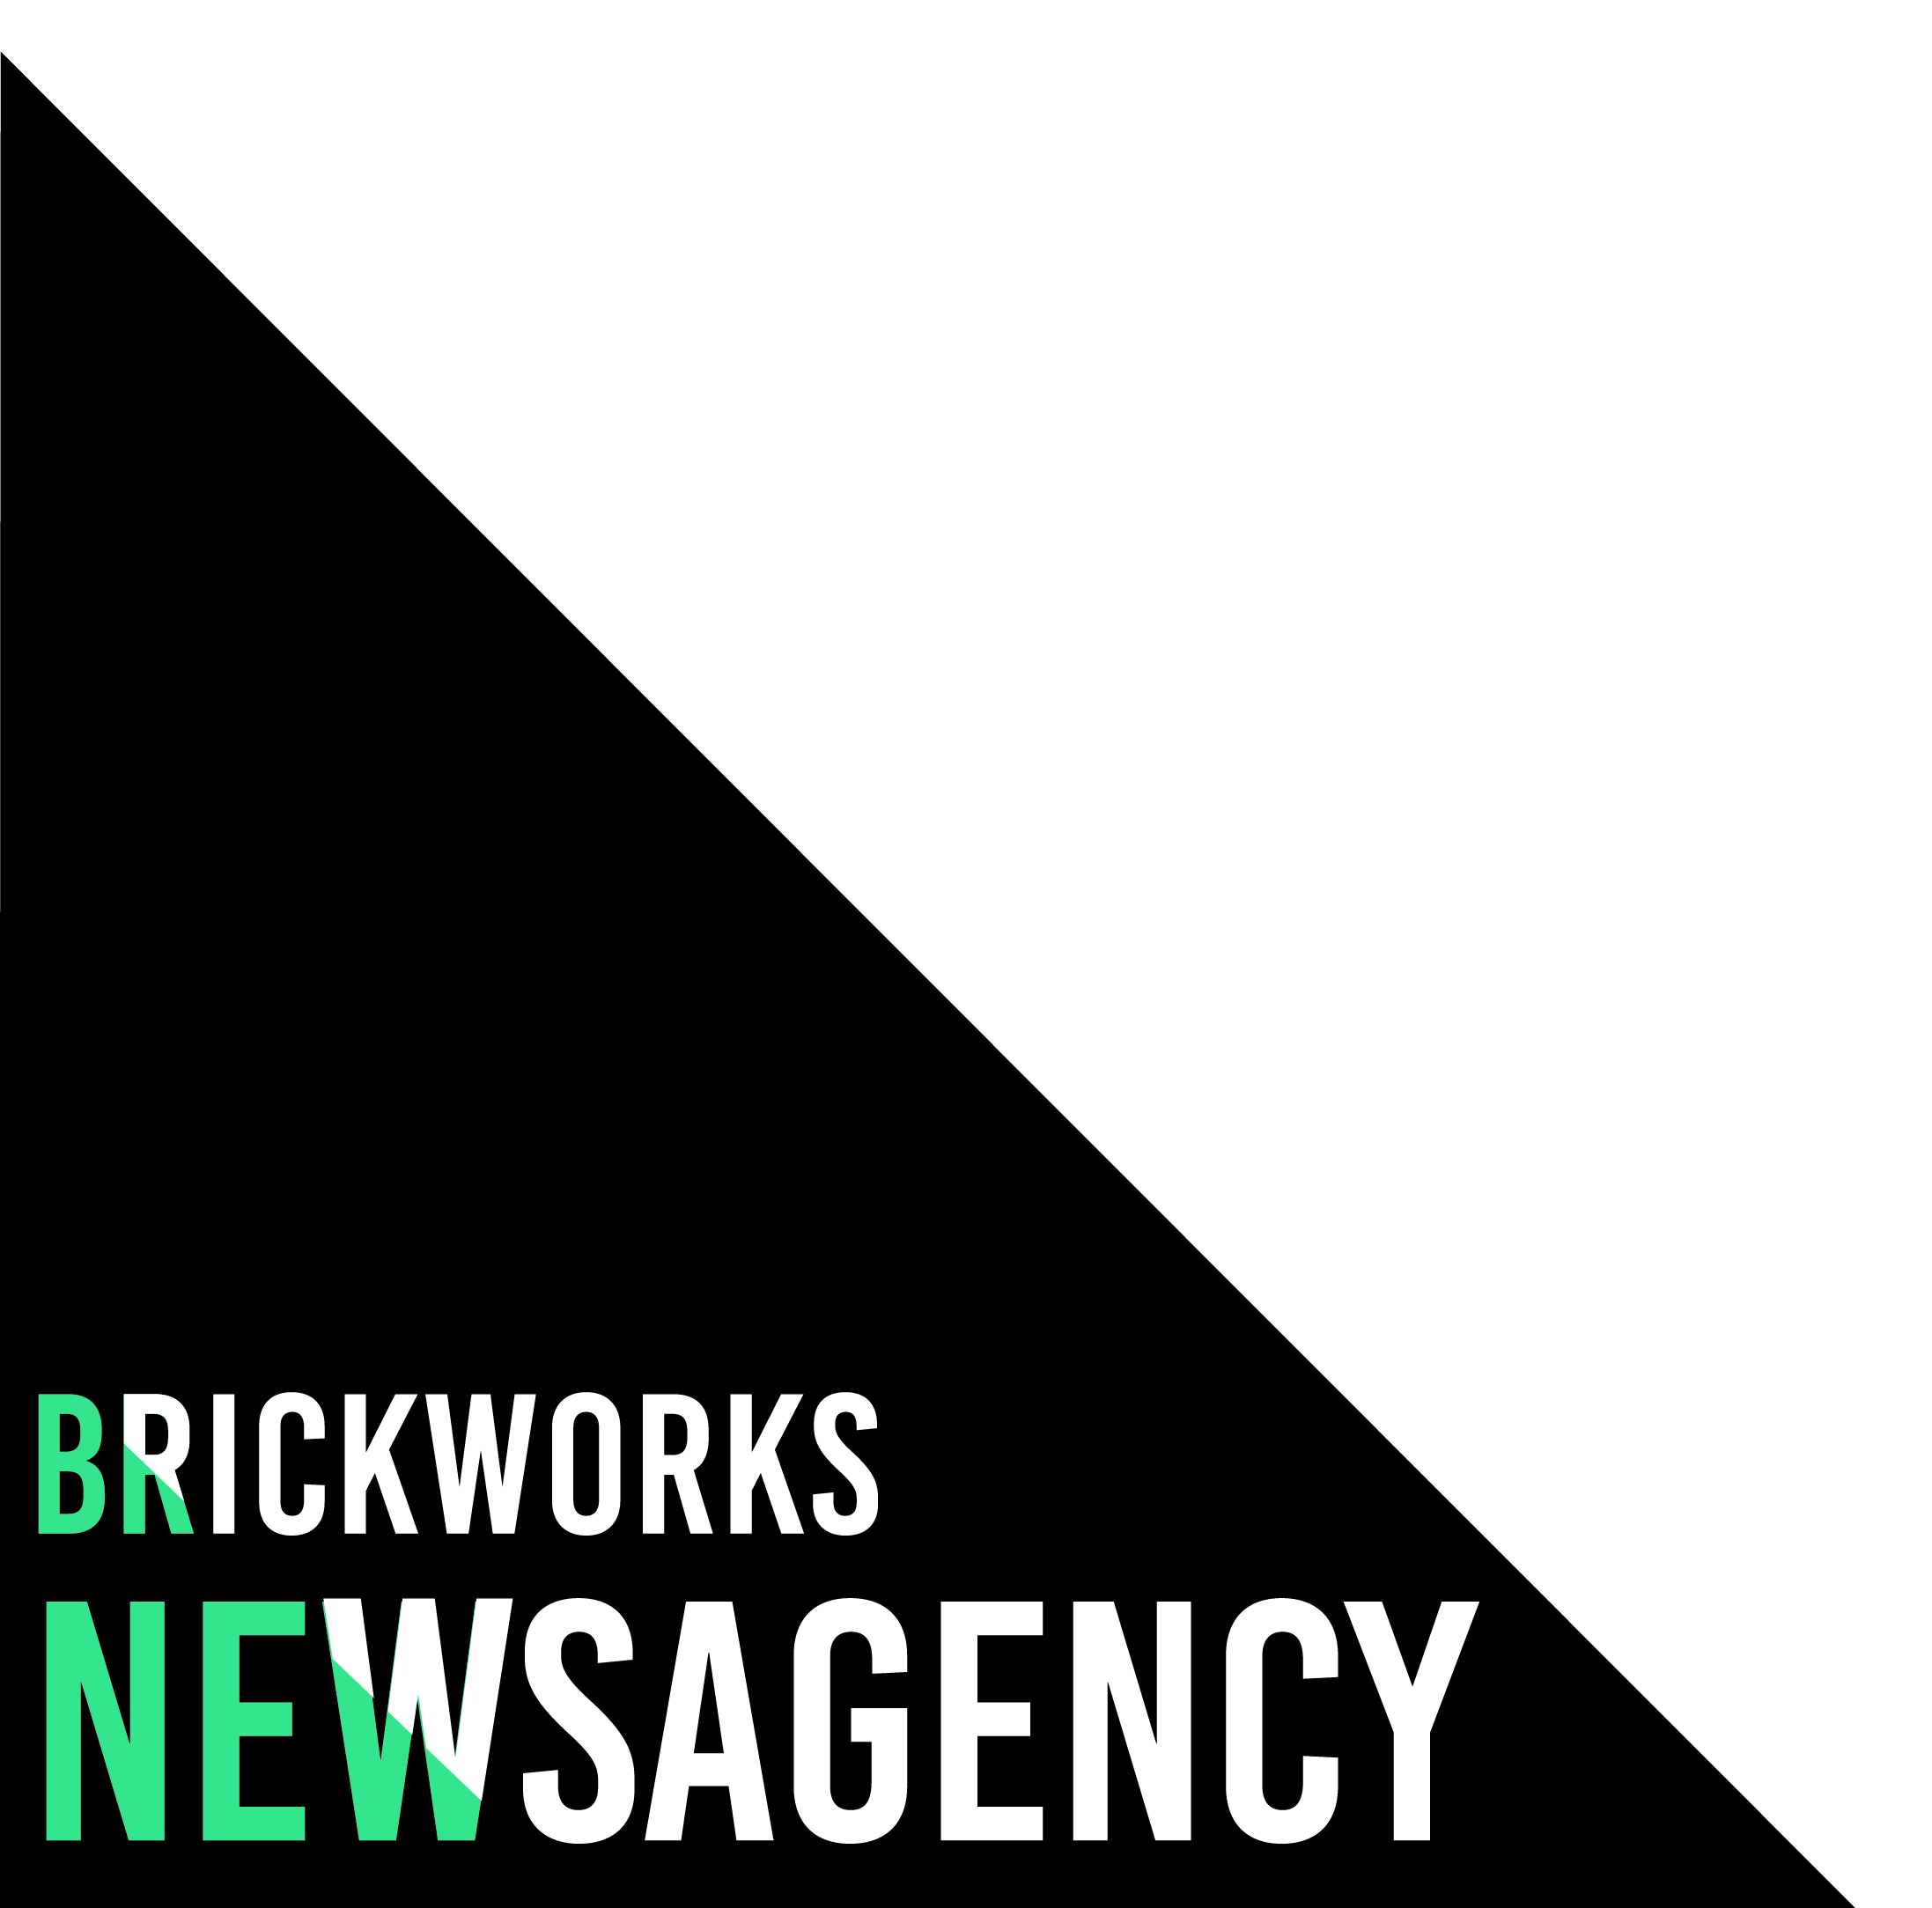 BRICKWORKS NEWS LOGO-03 (1)